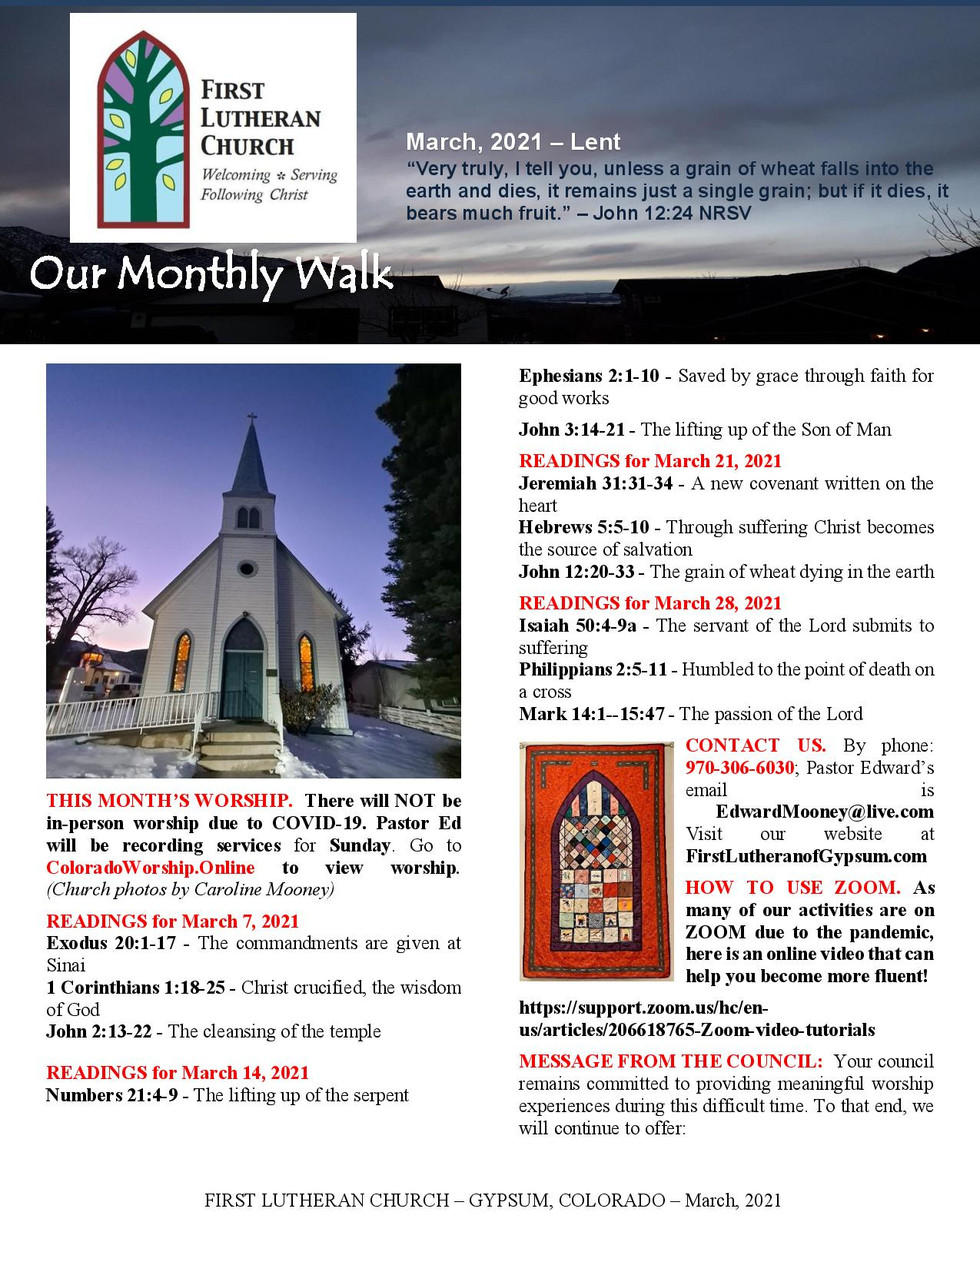 Newsletter for March, 2021. Page 1